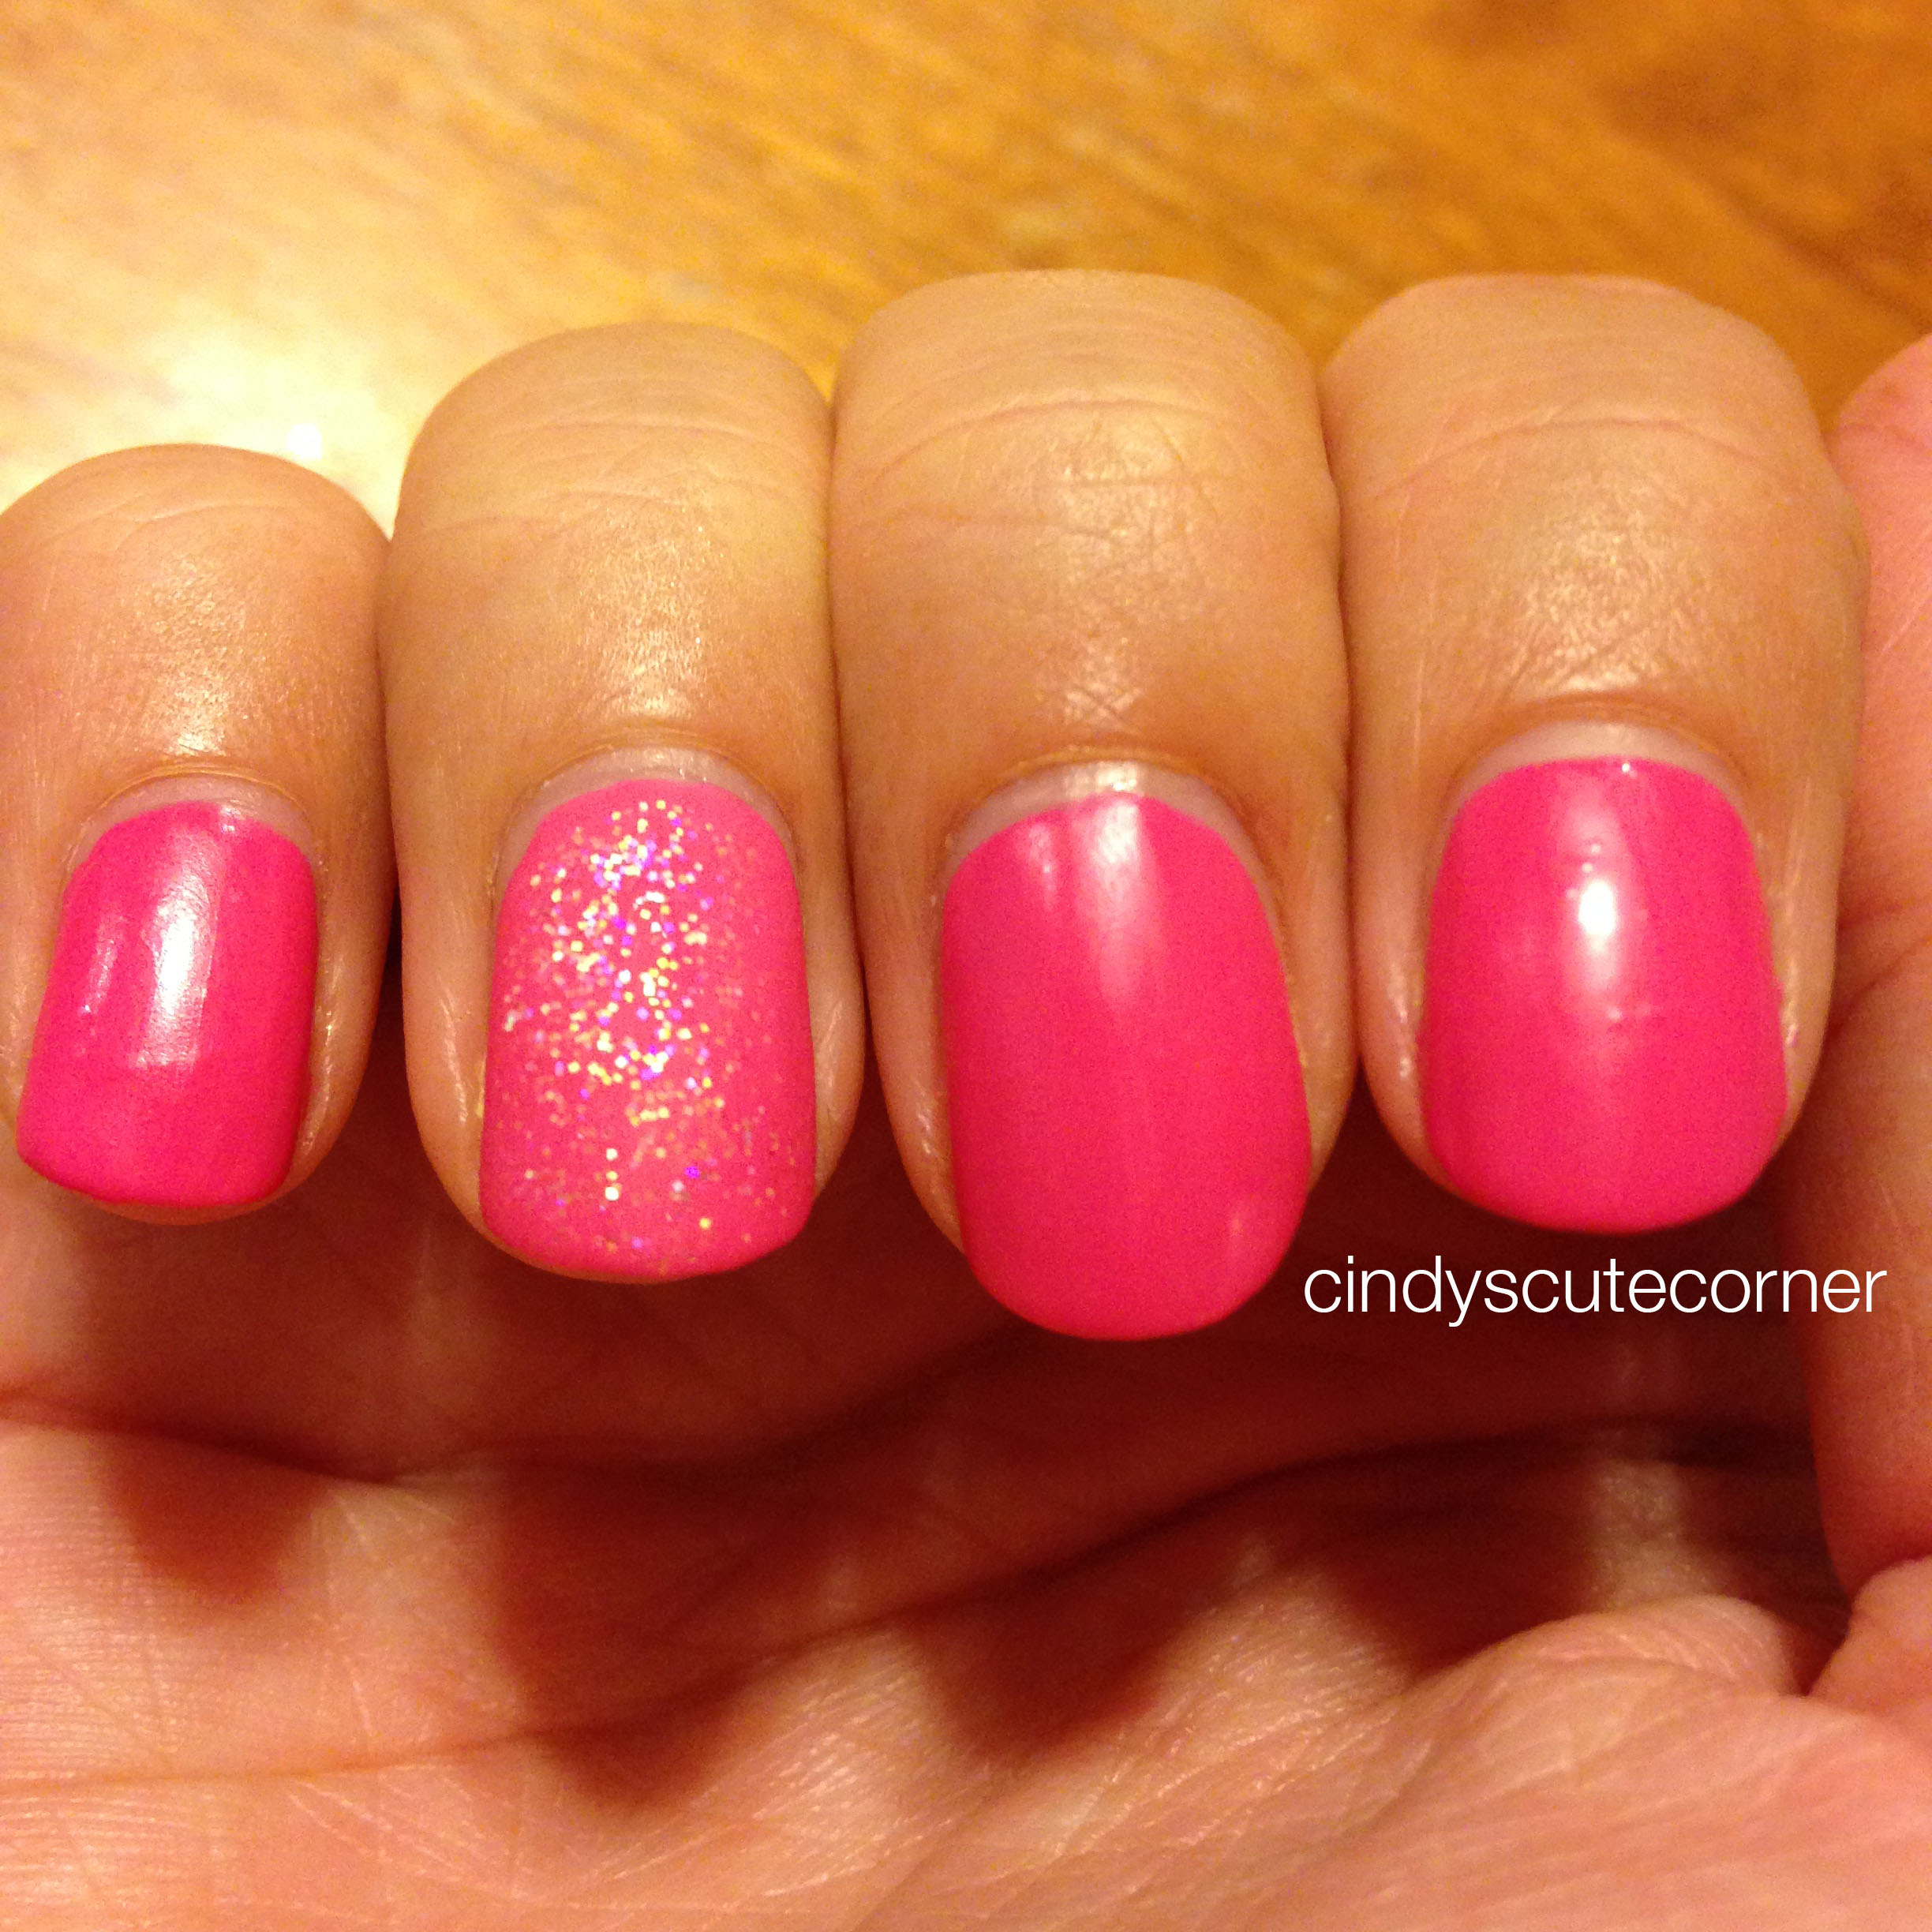 Matte Pink Nails - Cindy\'s Cute Corner